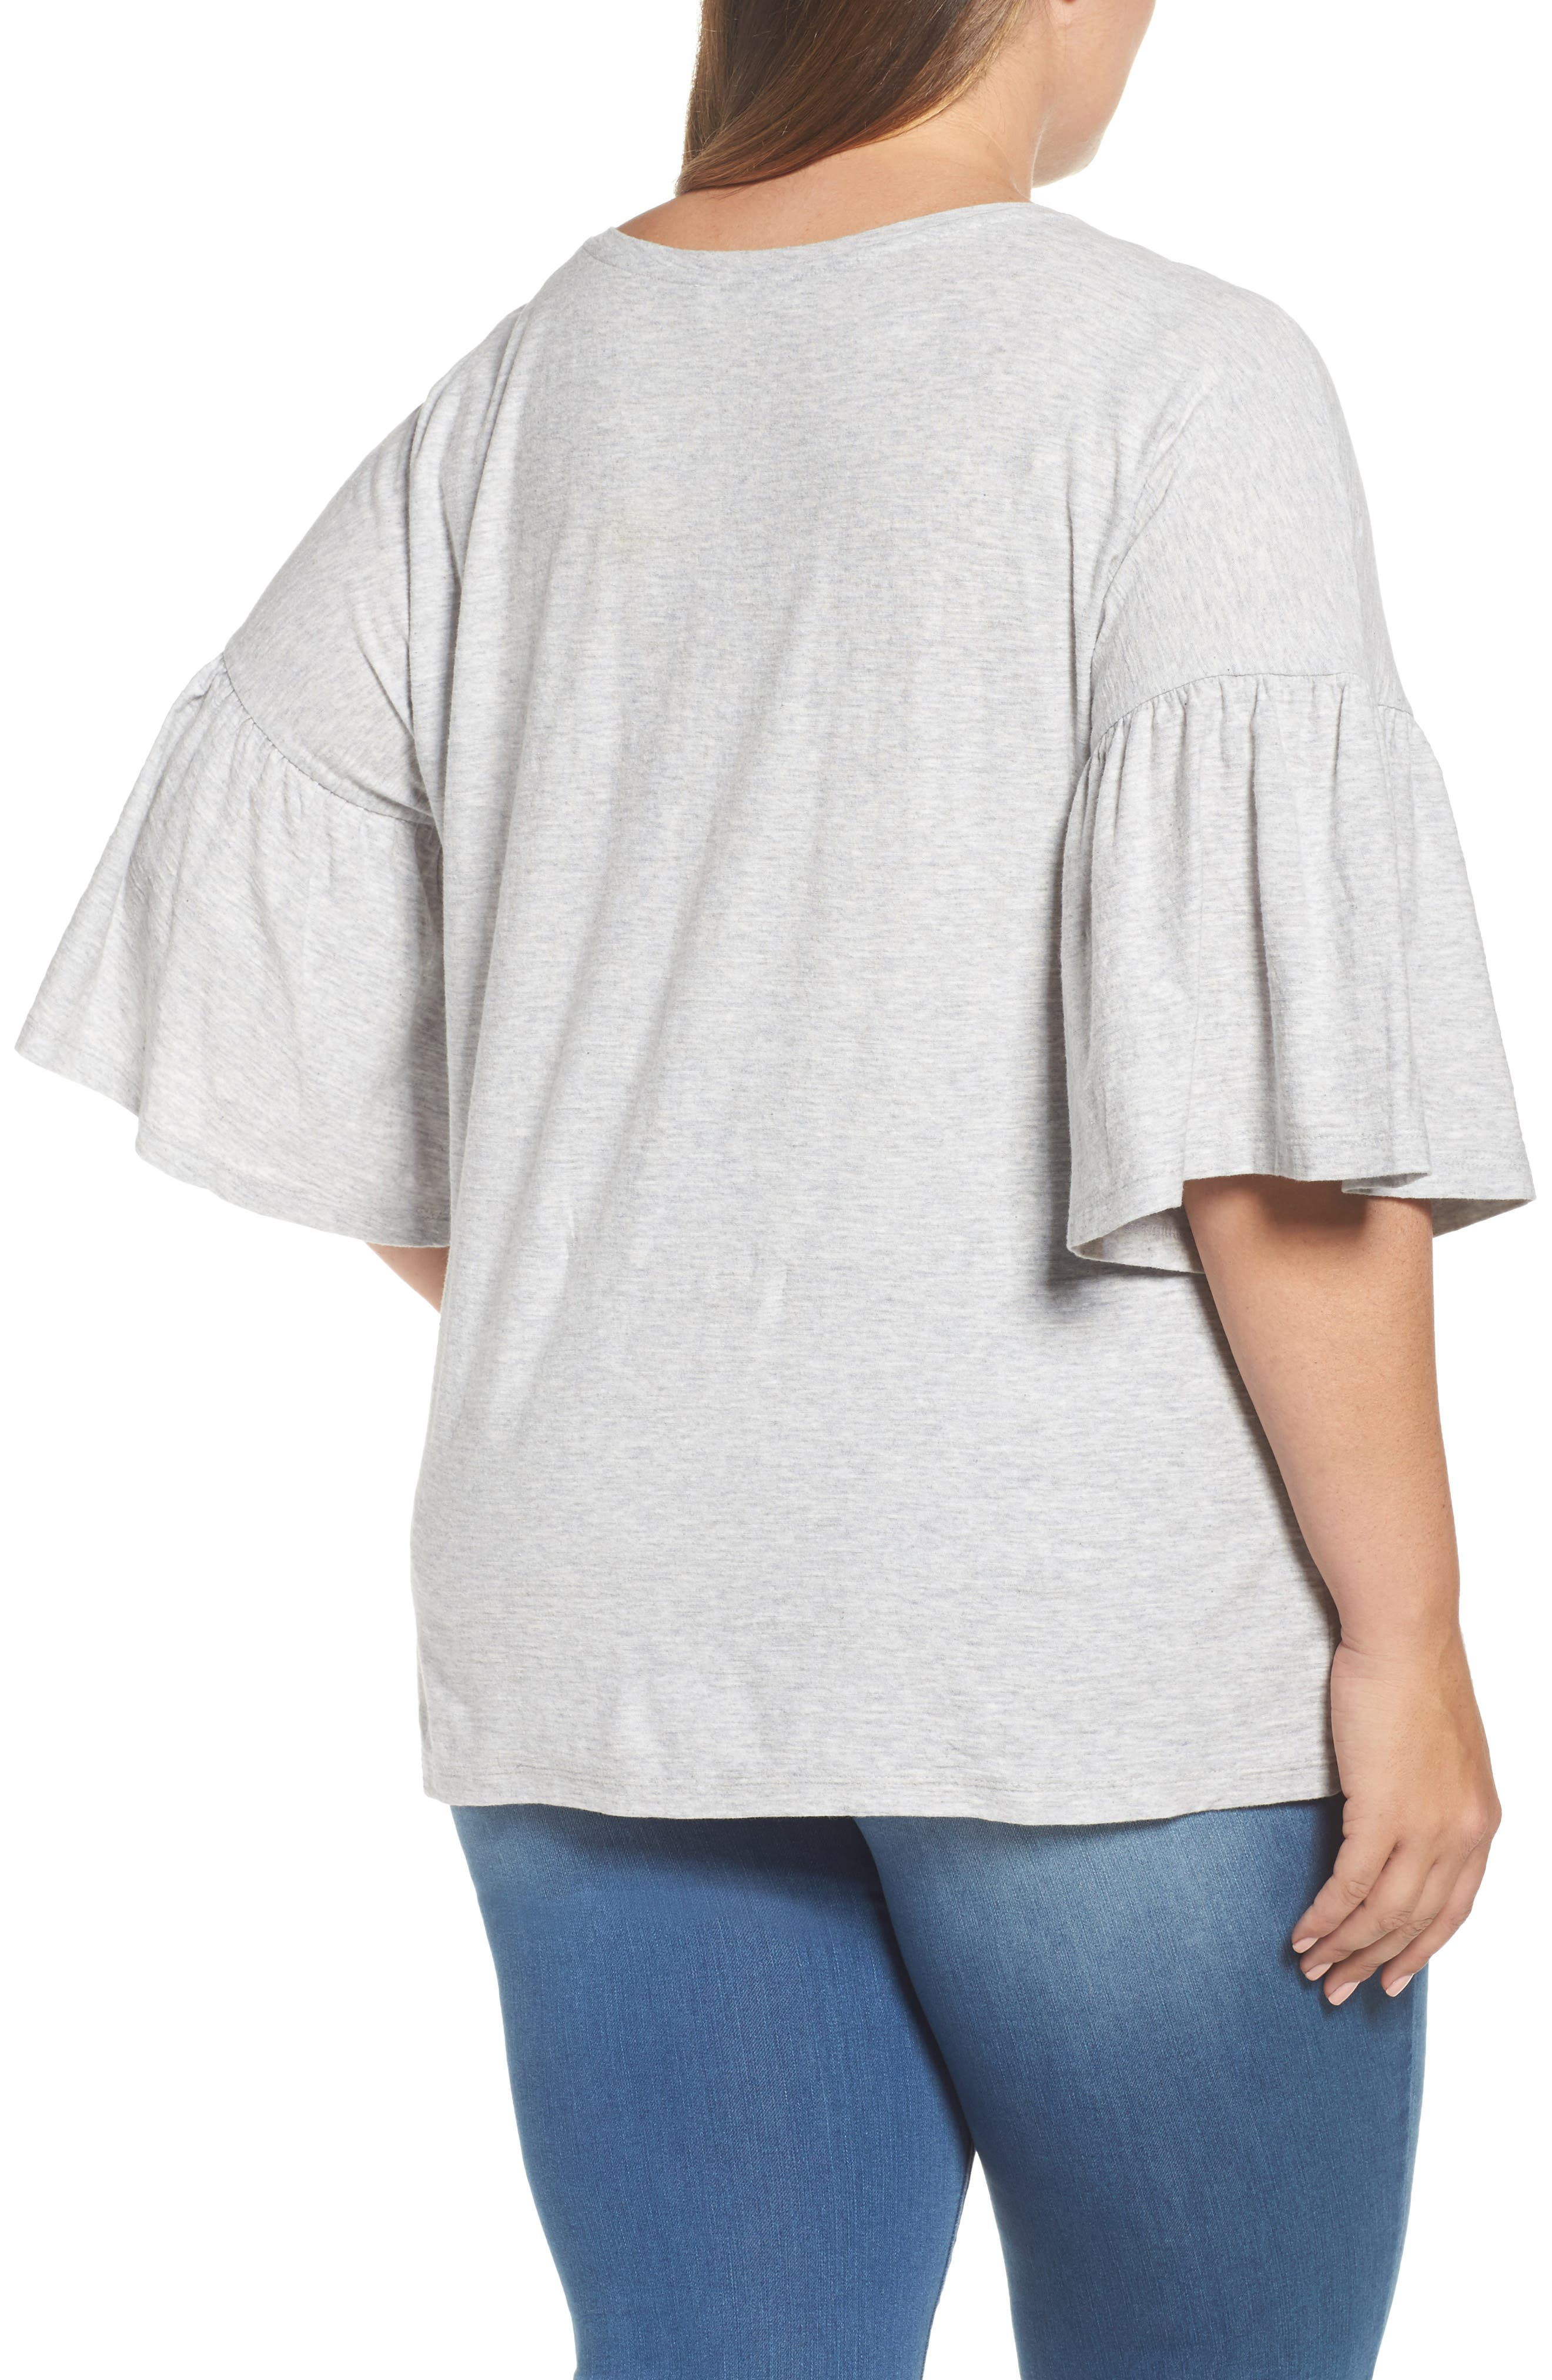 Alternate Image 2  - Vince Camuto Relaxed Bell Sleeve Cotton Tee (Plus Size)